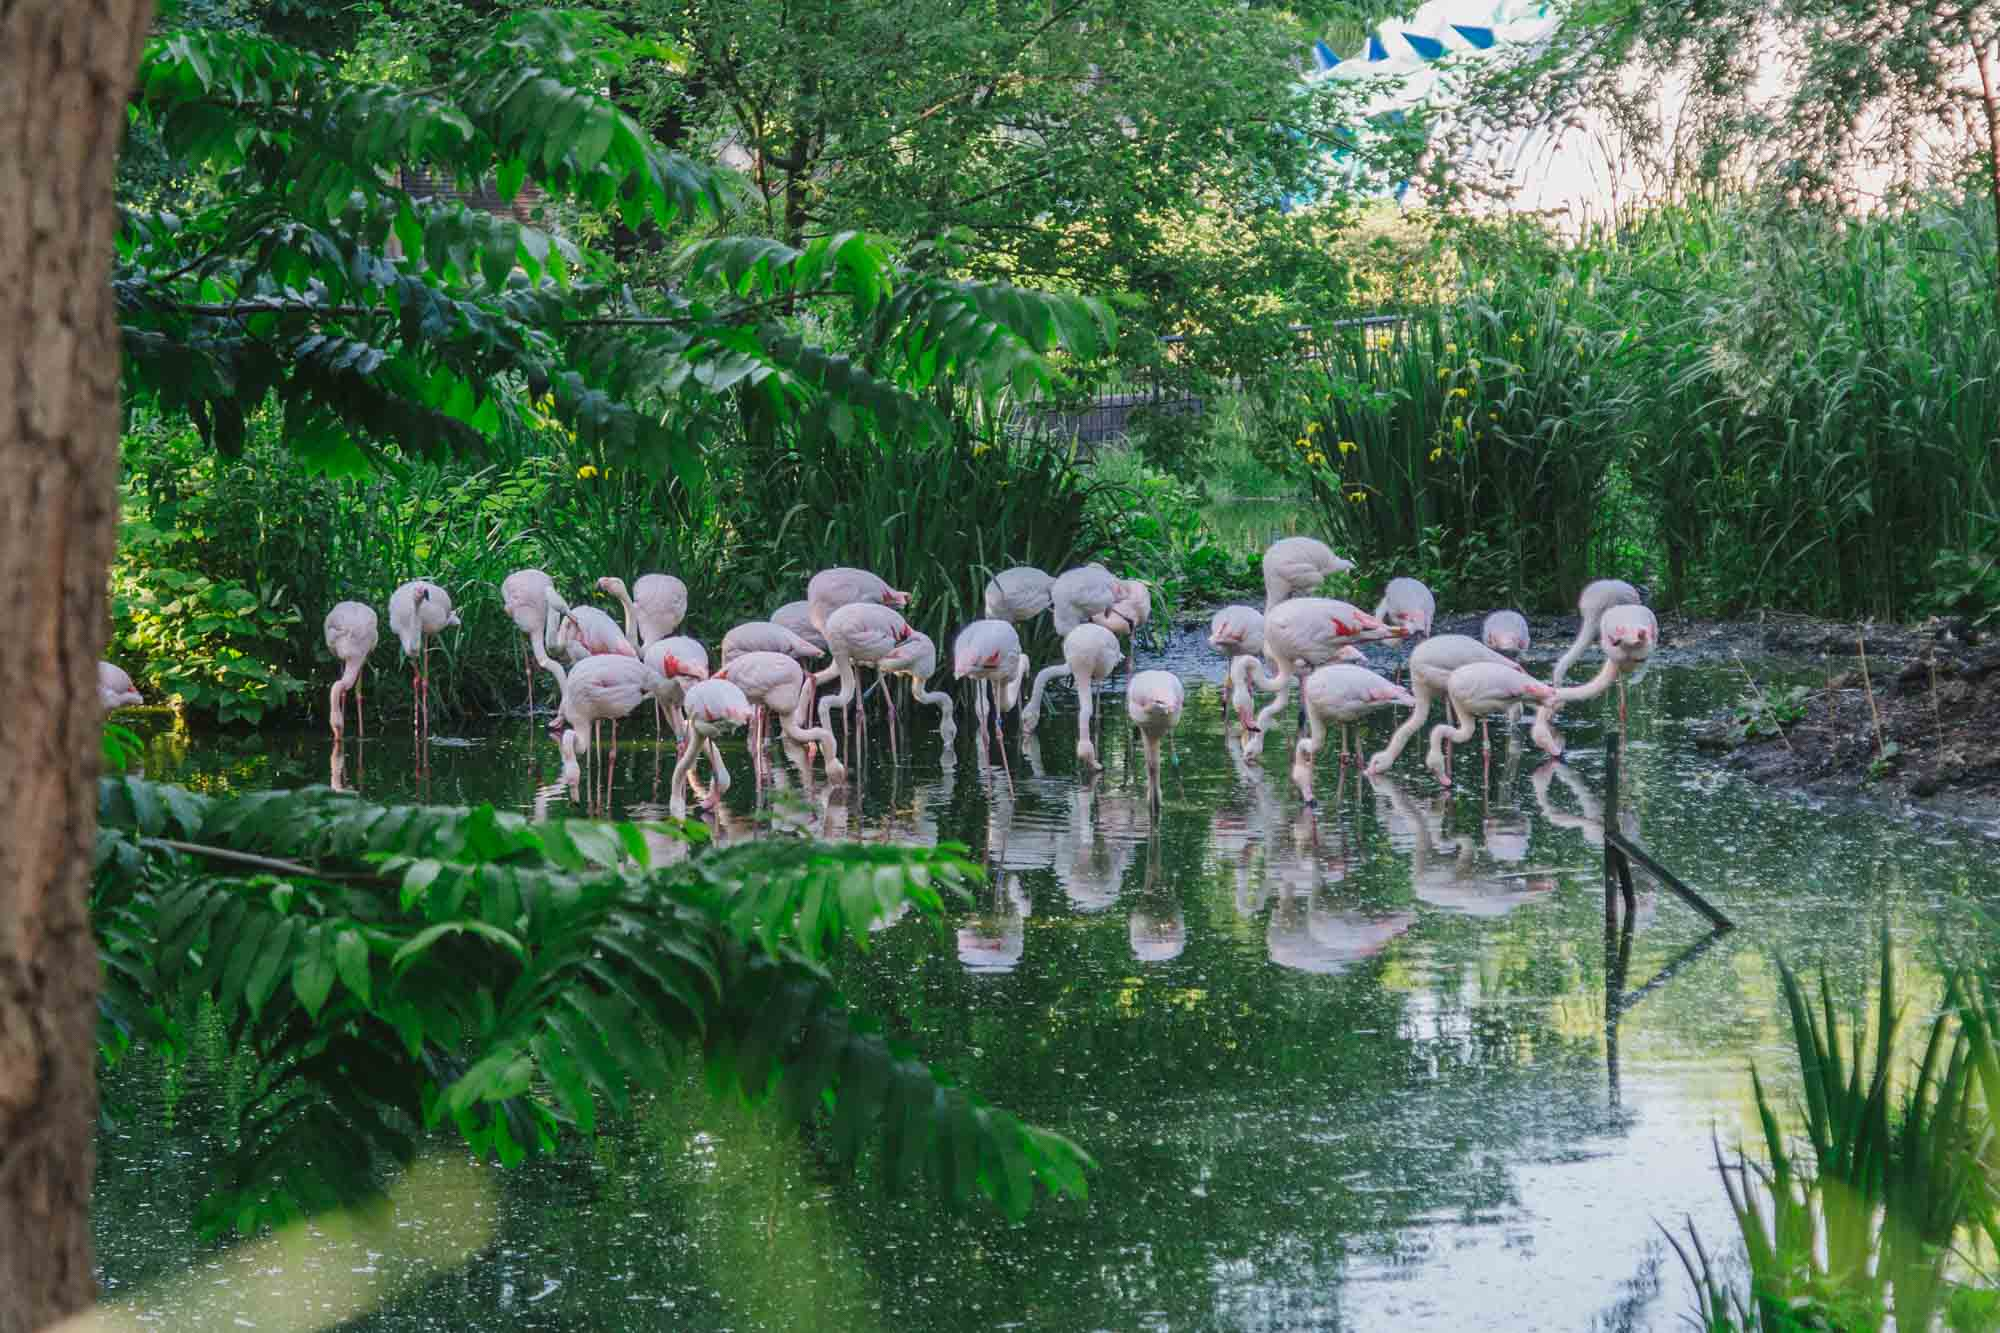 London Zoo - Flamingos